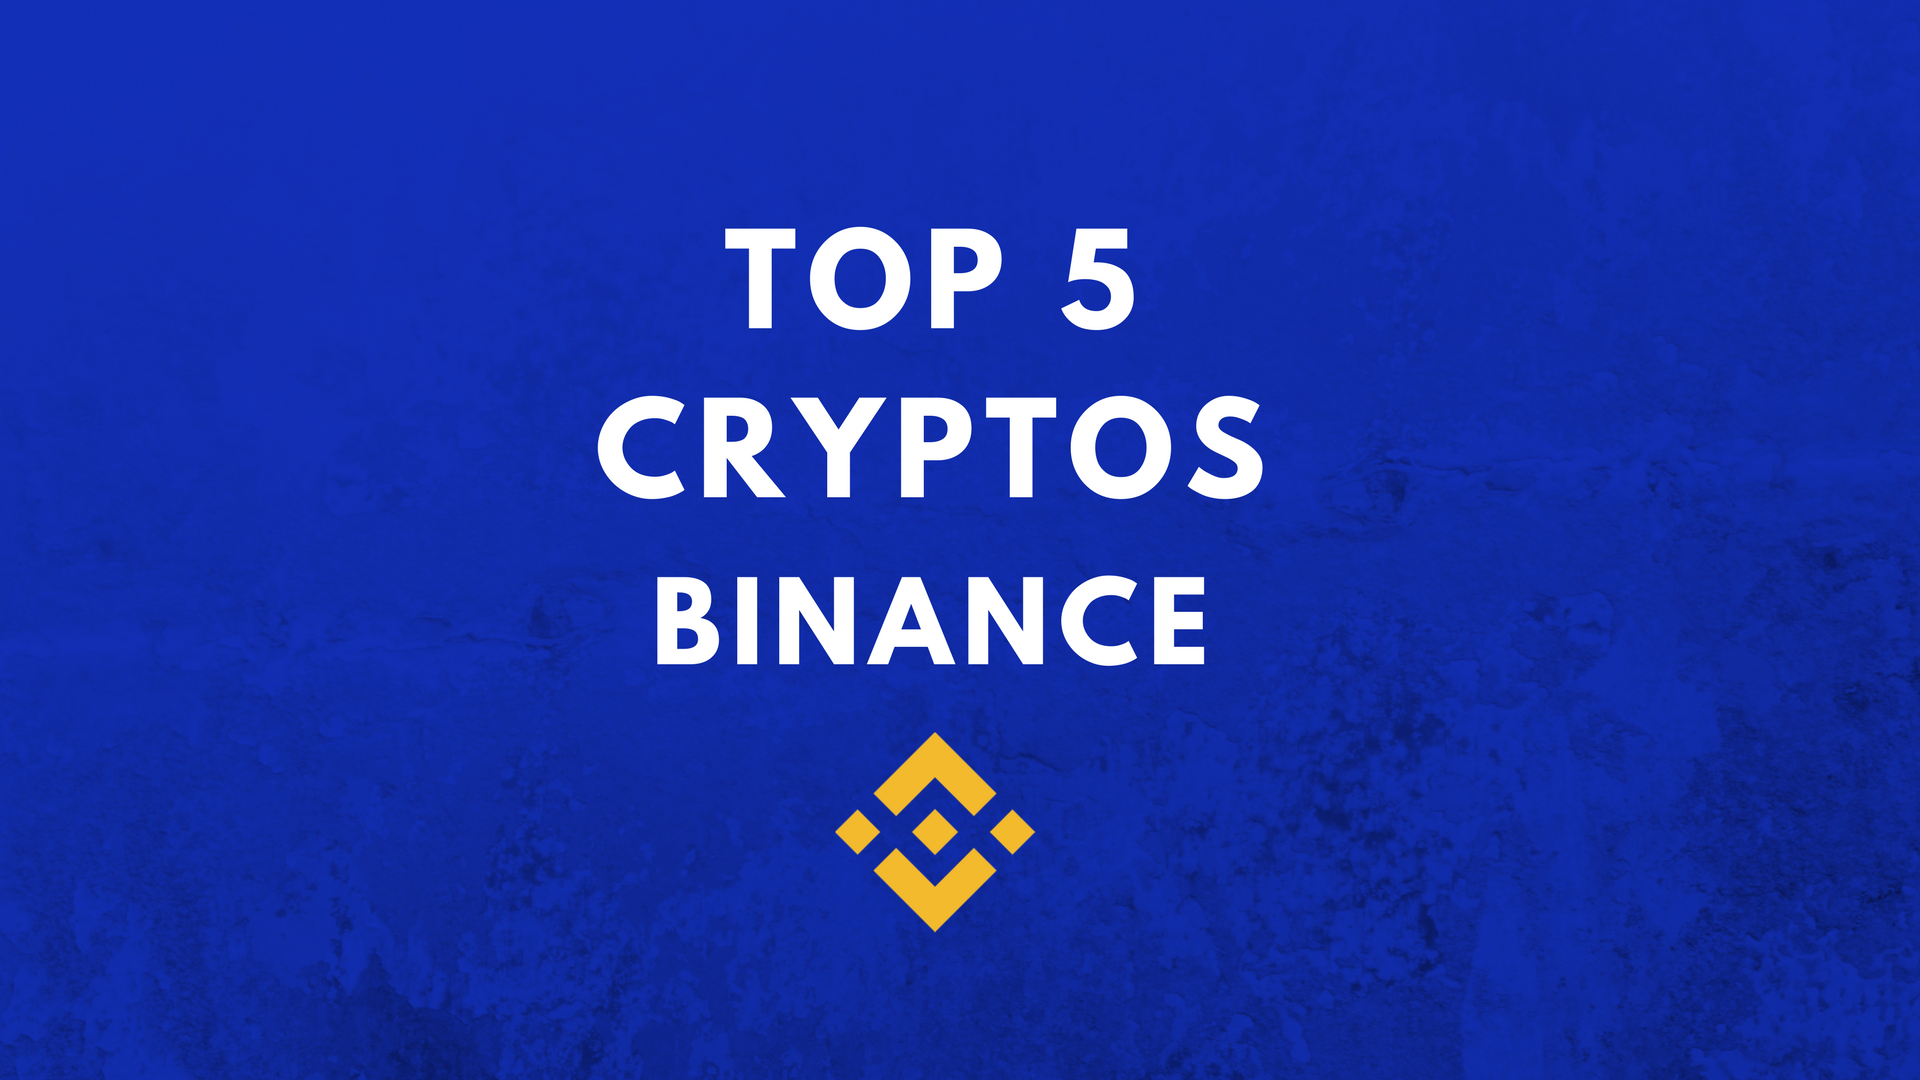 what cryptocurrencies can i buy on binance